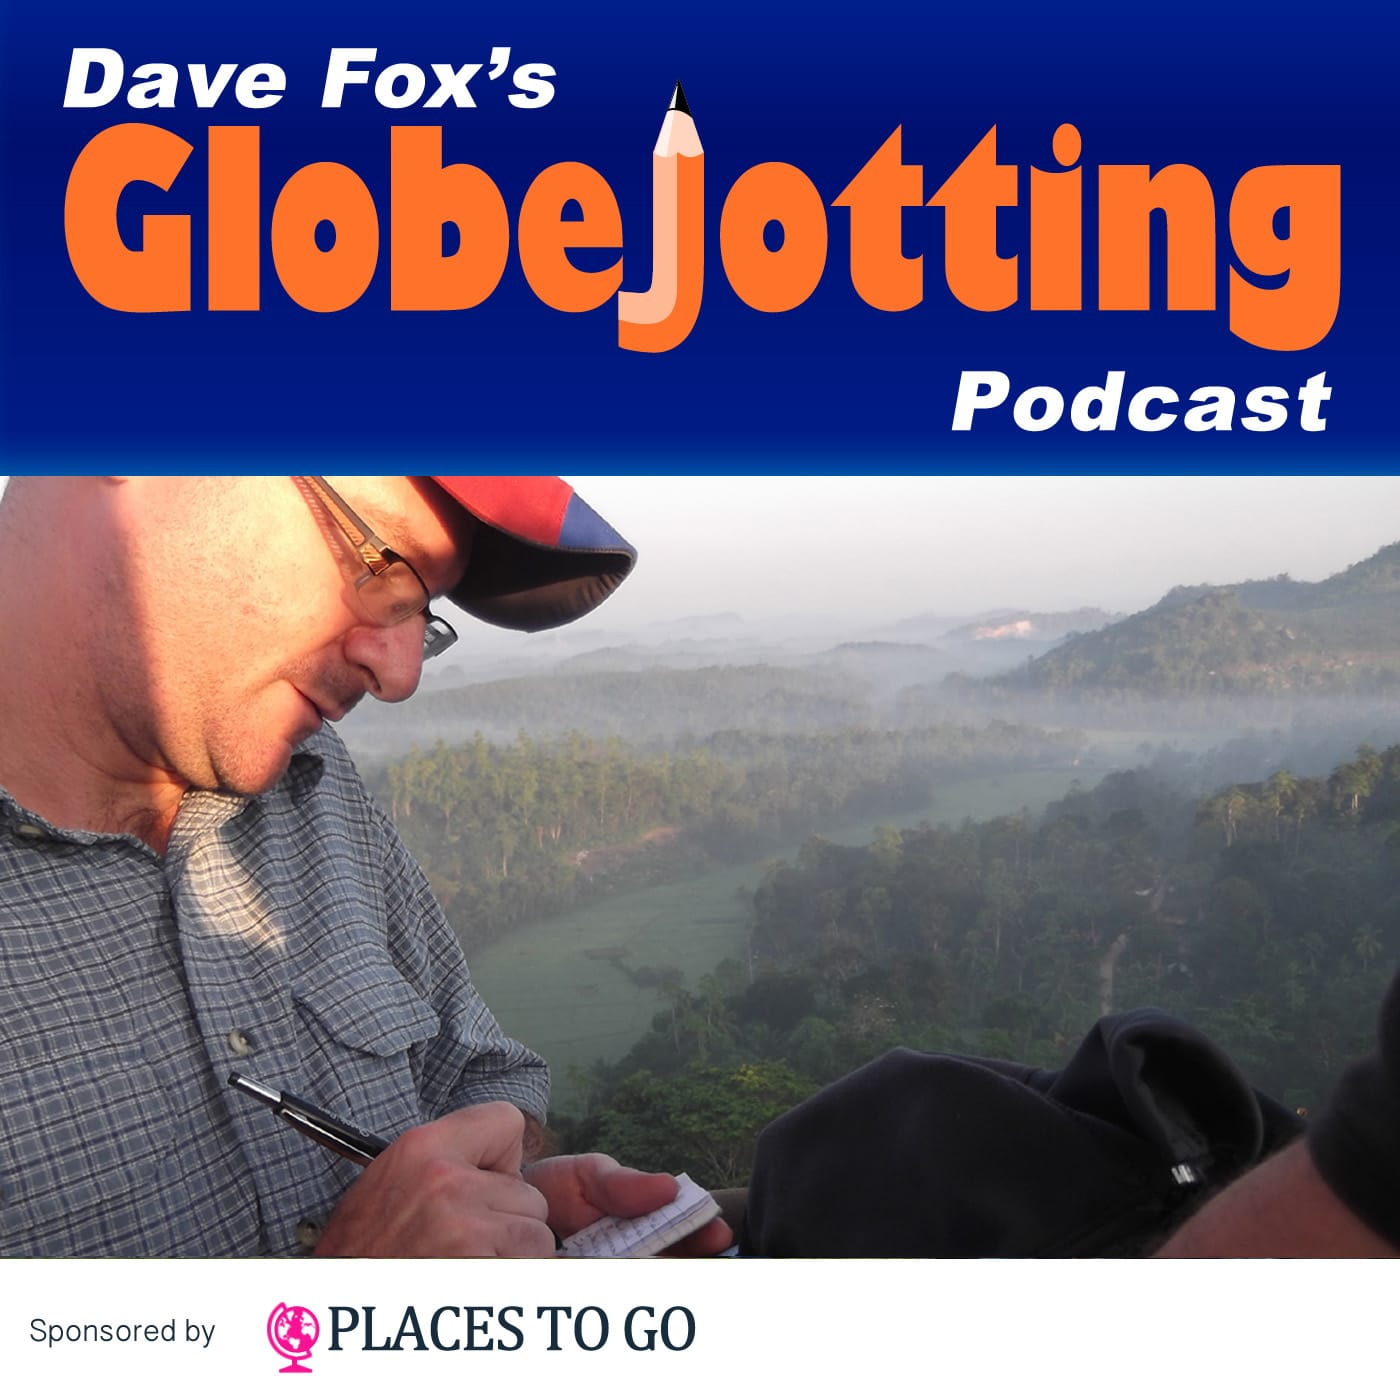 Globejotting Travel Podcast with Dave Fox